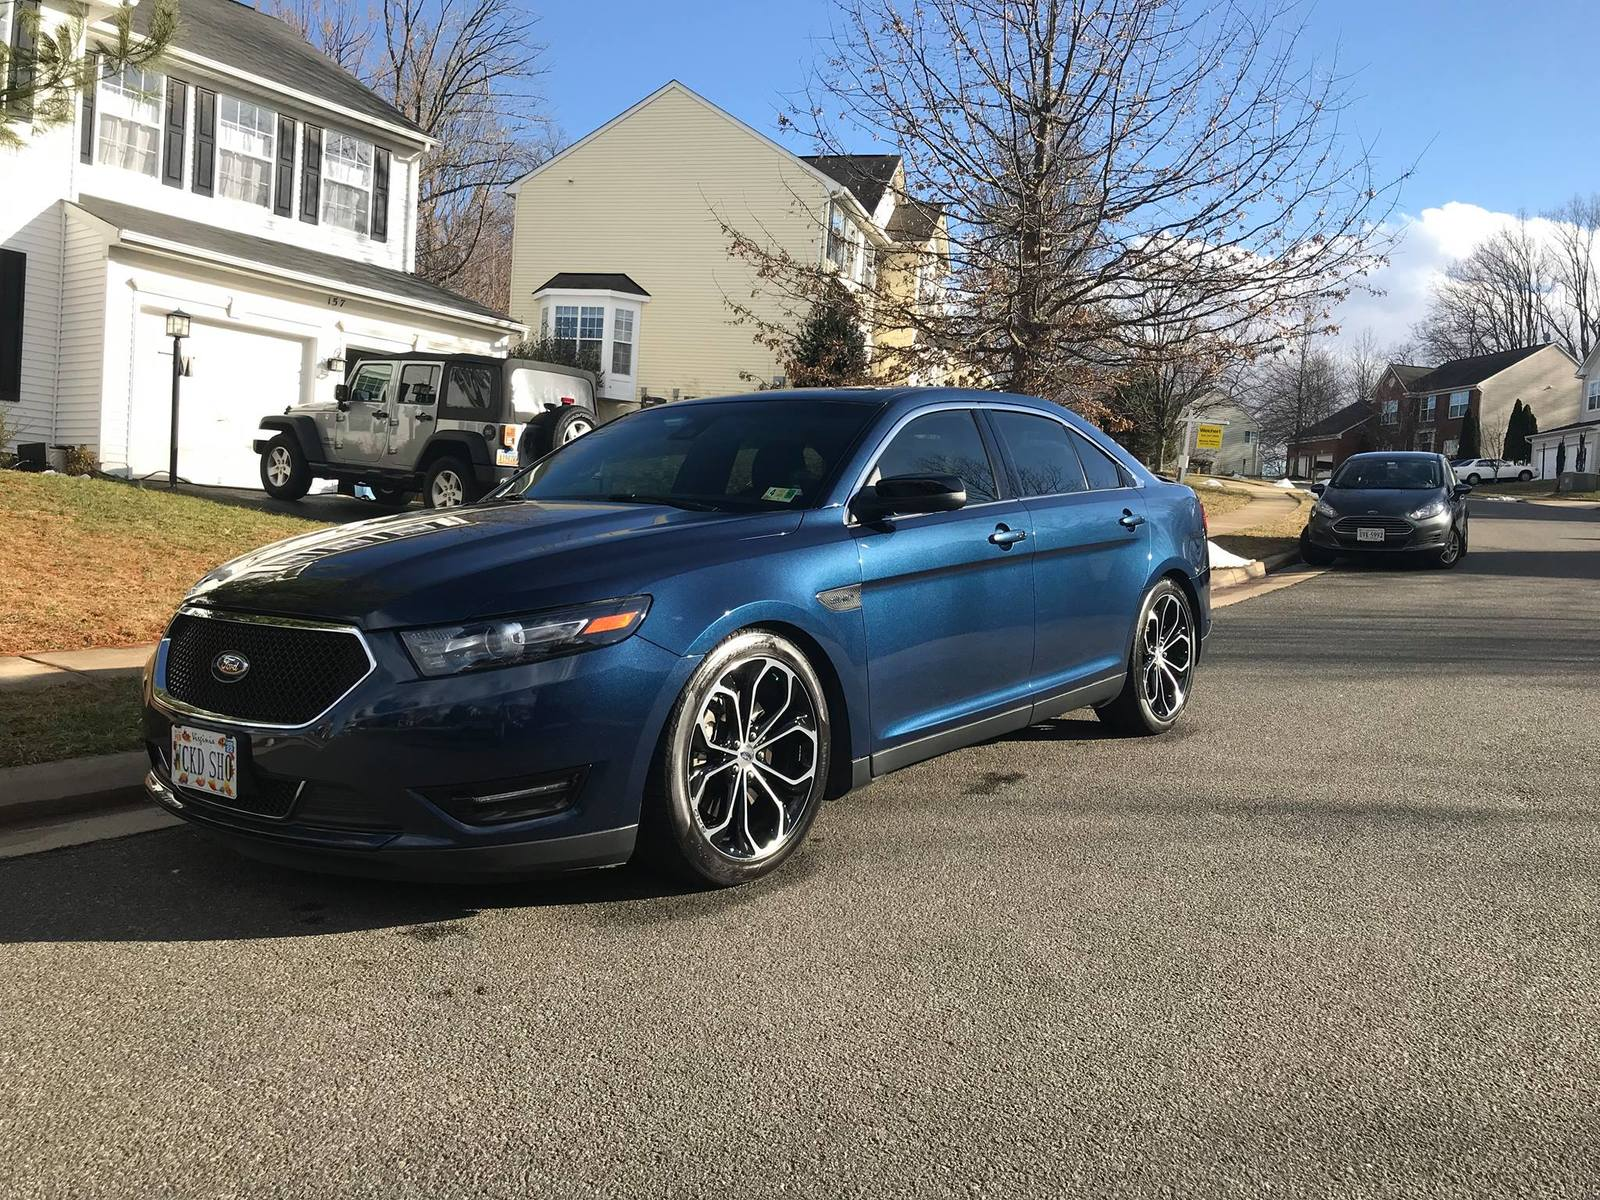 Ford Taurus Sho 0-60 >> 2016 Ford Taurus Sho 1 4 Mile Trap Speeds 0 60 Dragtimes Com